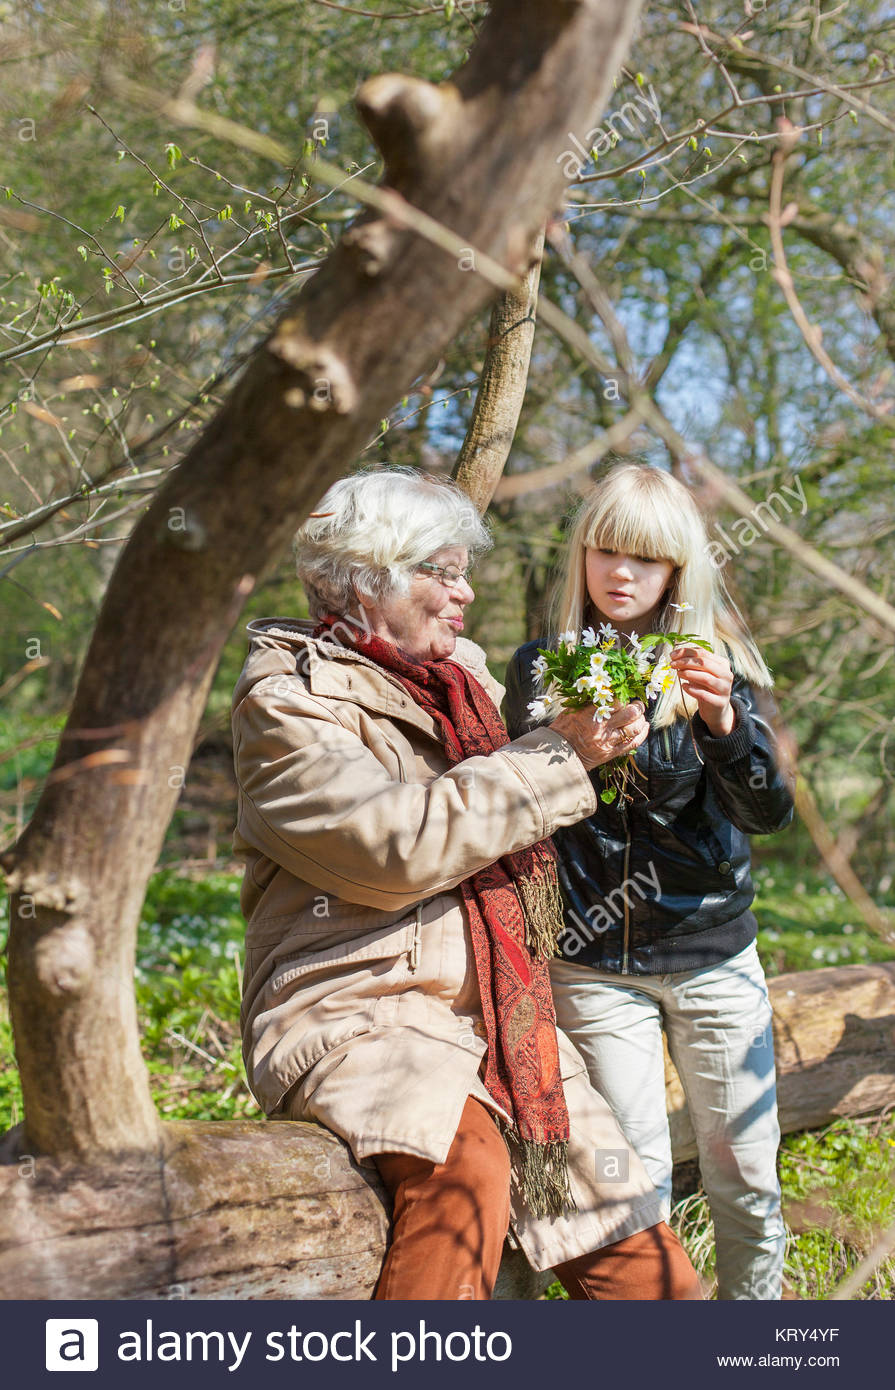 Girl gathering flowers with her grandmother - Stock Image